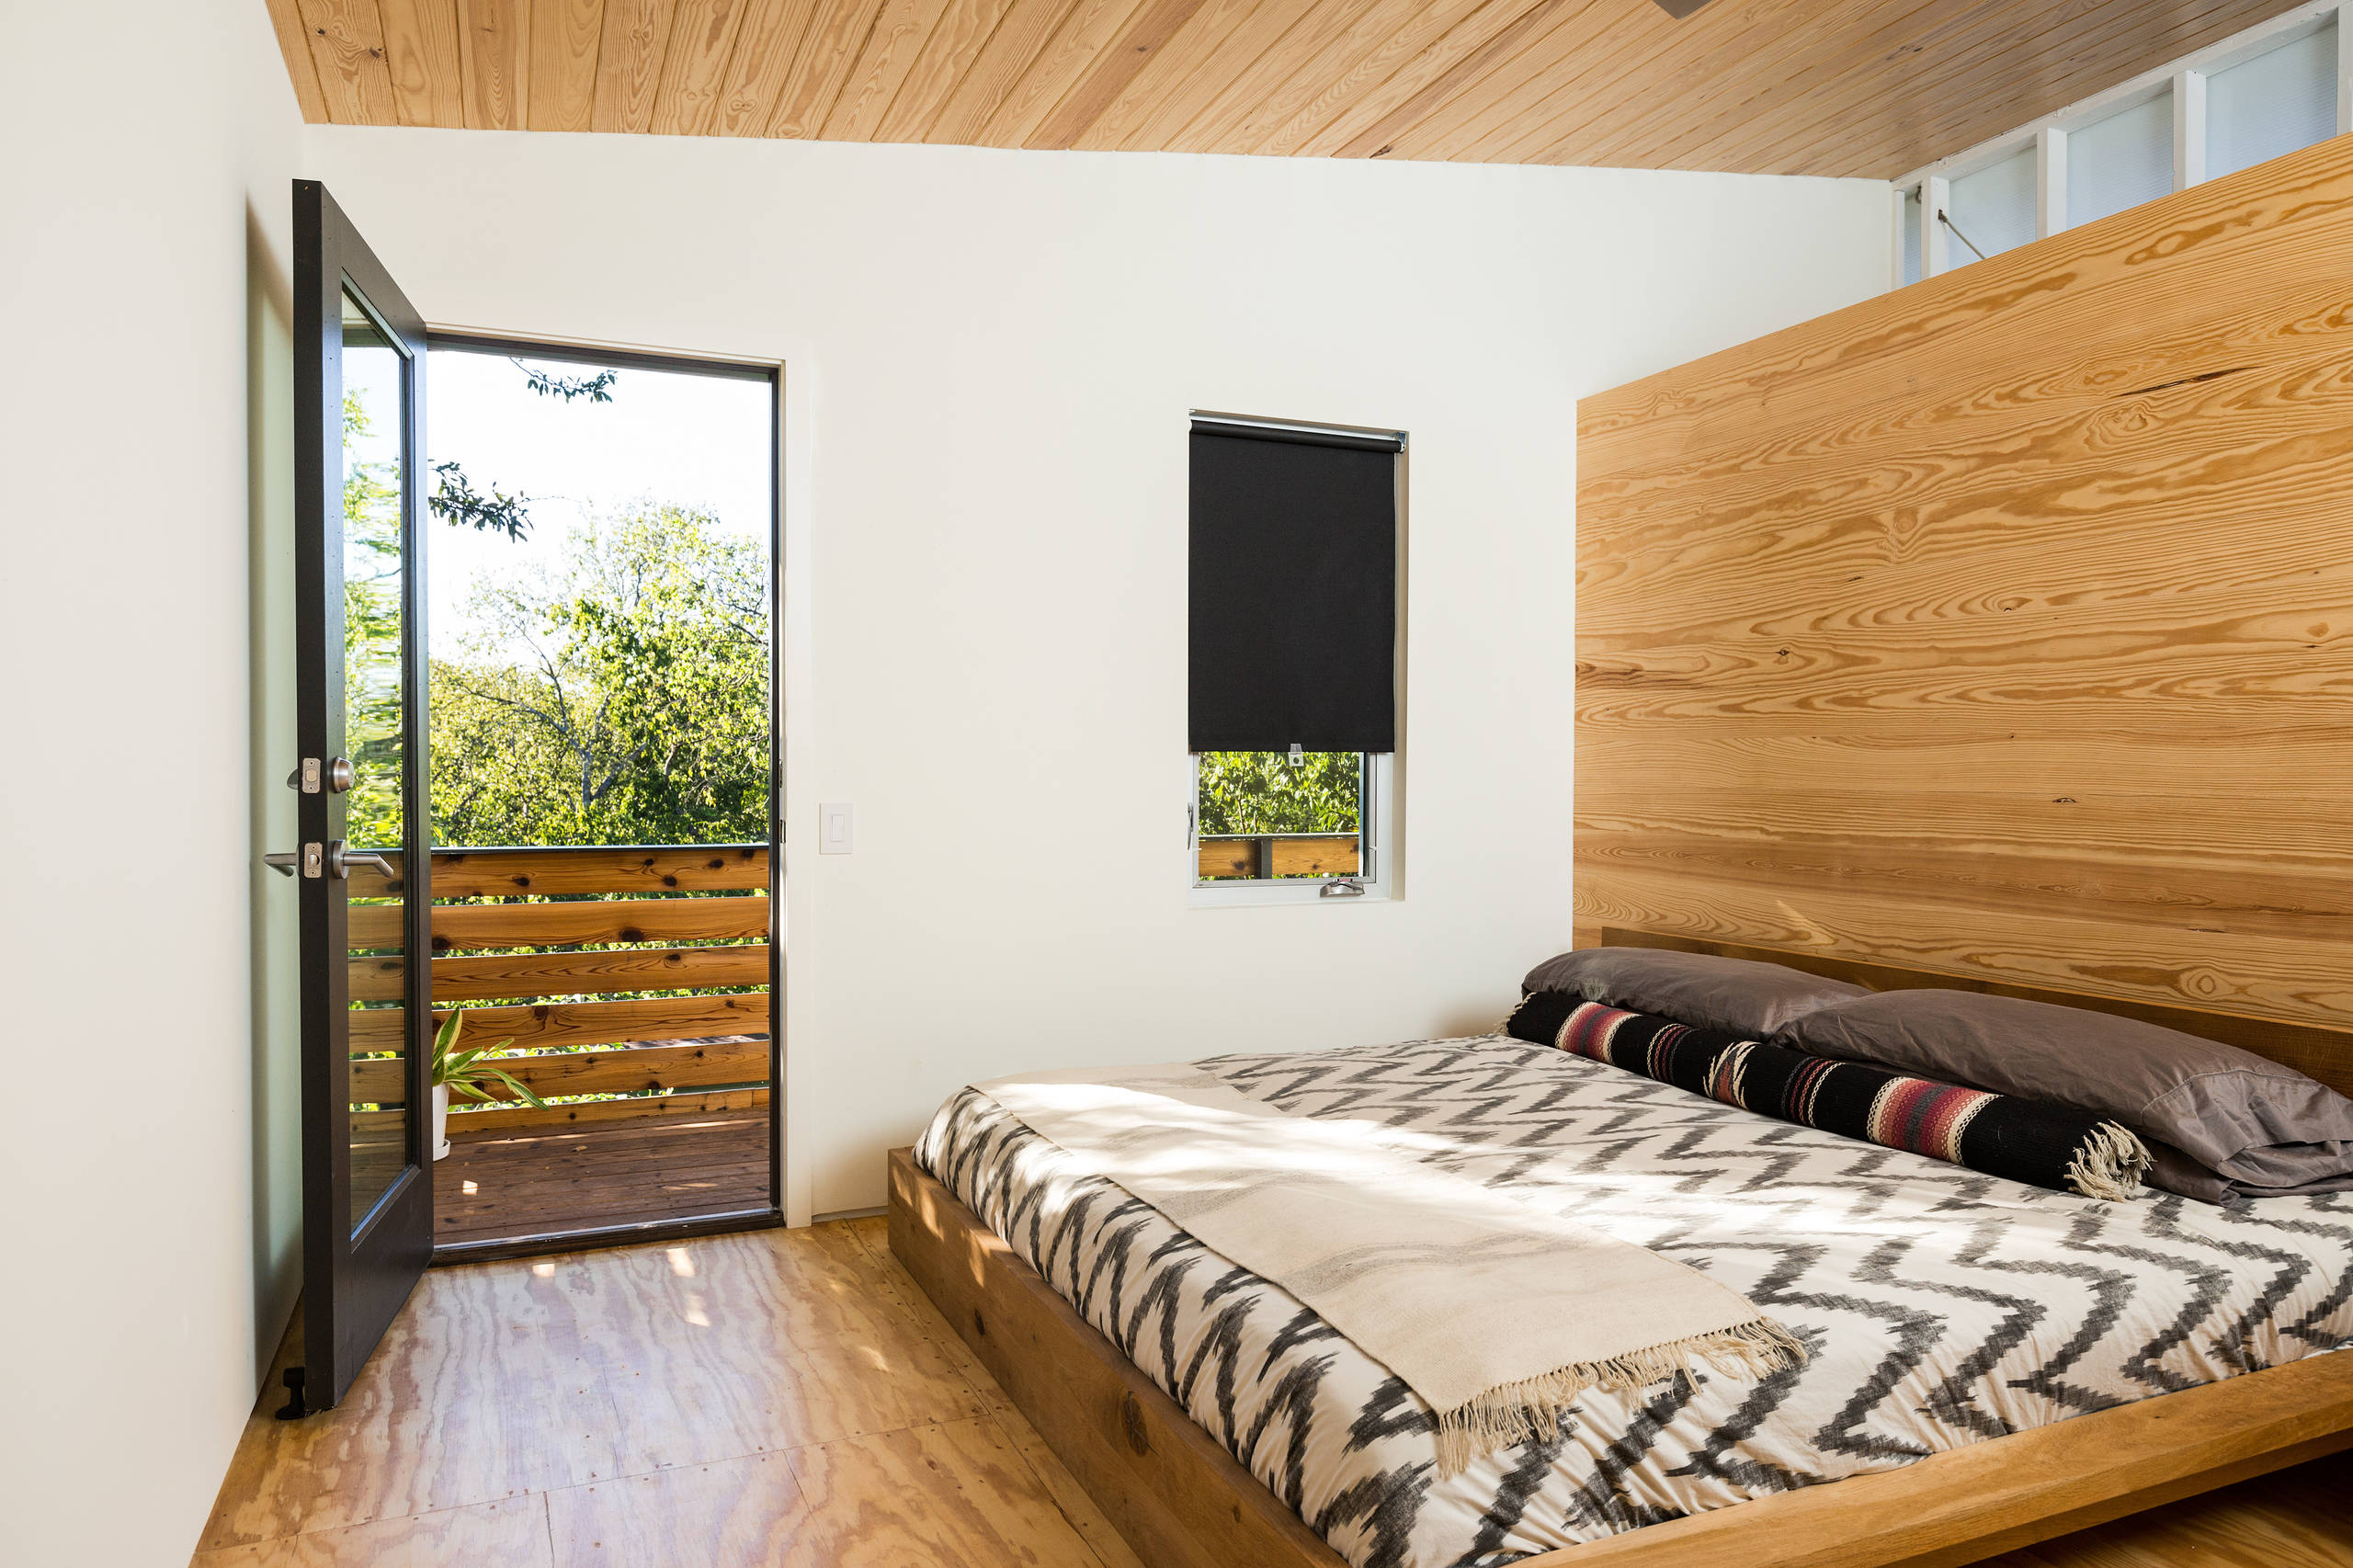 75 Beautiful Plywood Floor Bedroom Pictures Ideas February 2021 Houzz